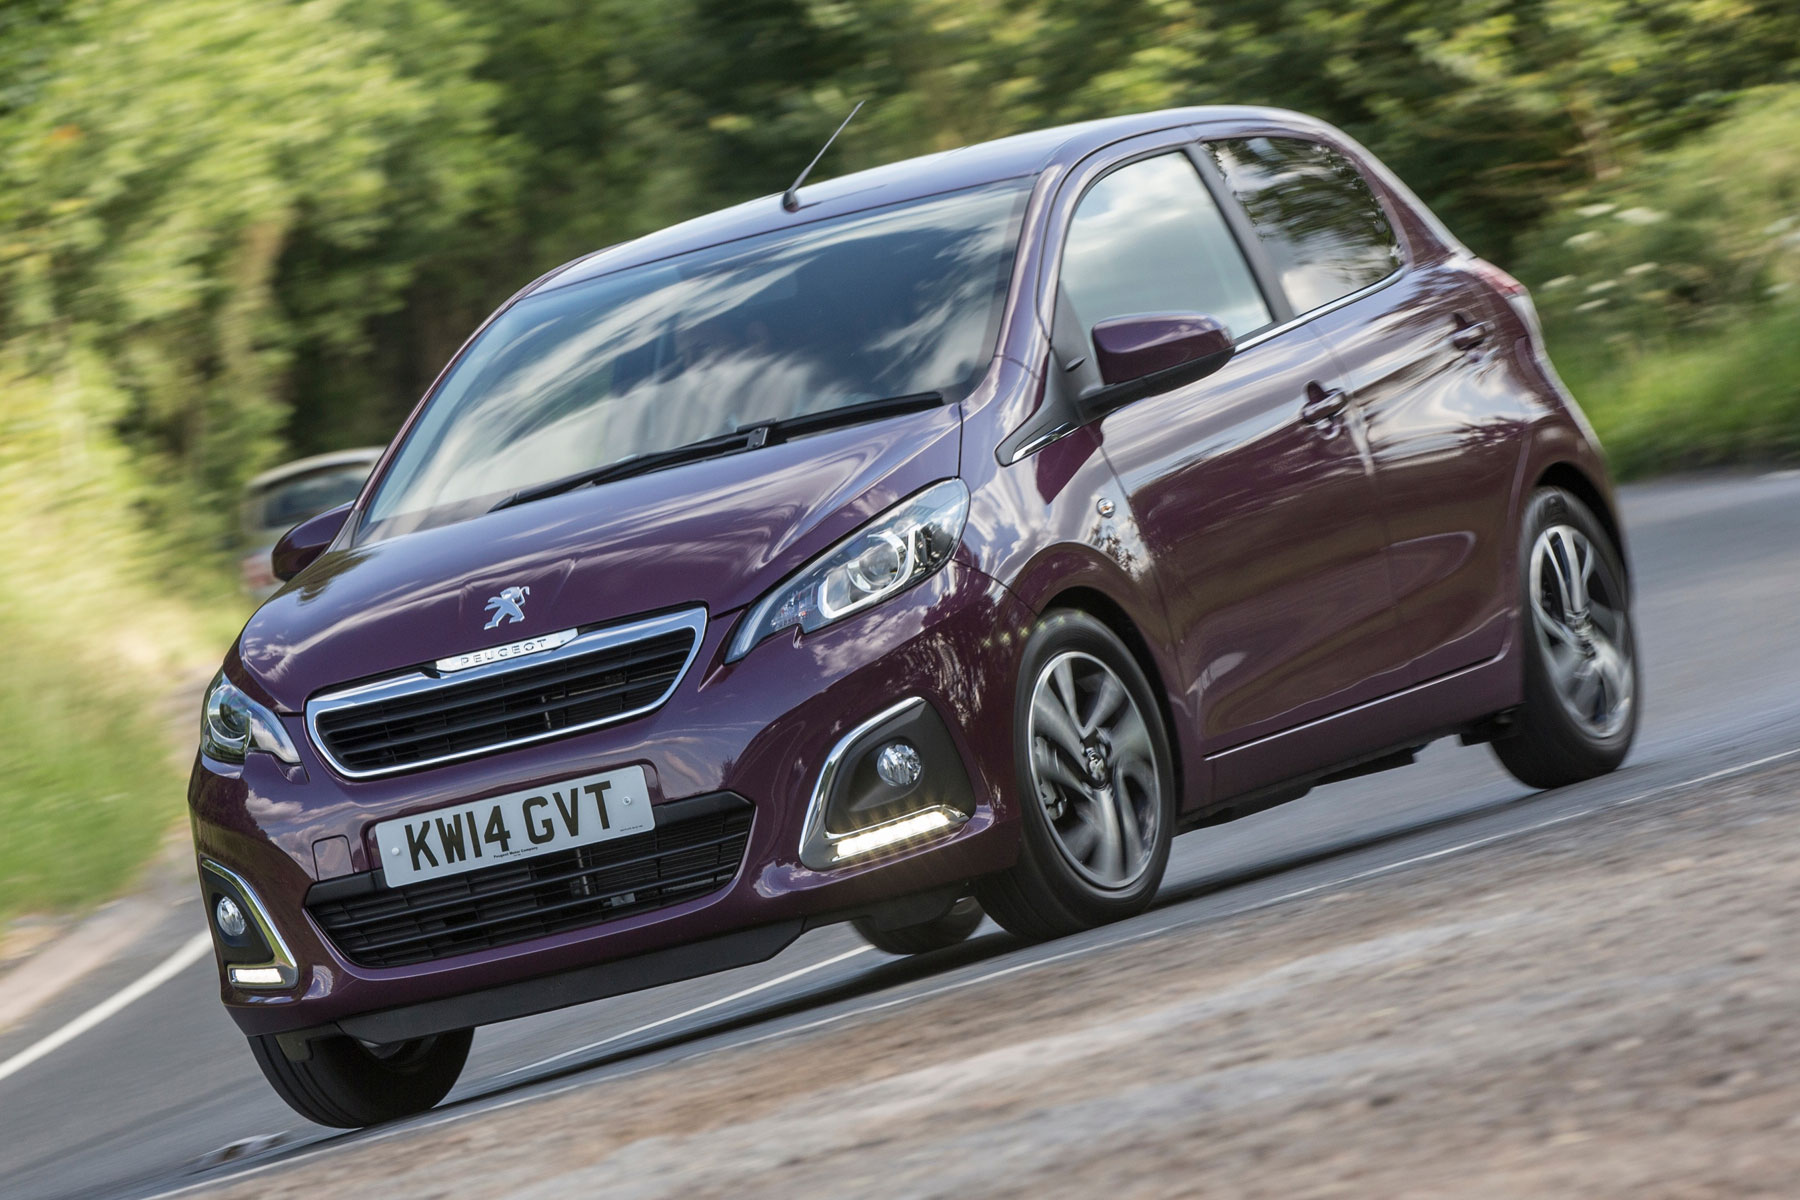 The 20 best first cars: Peugeot 108